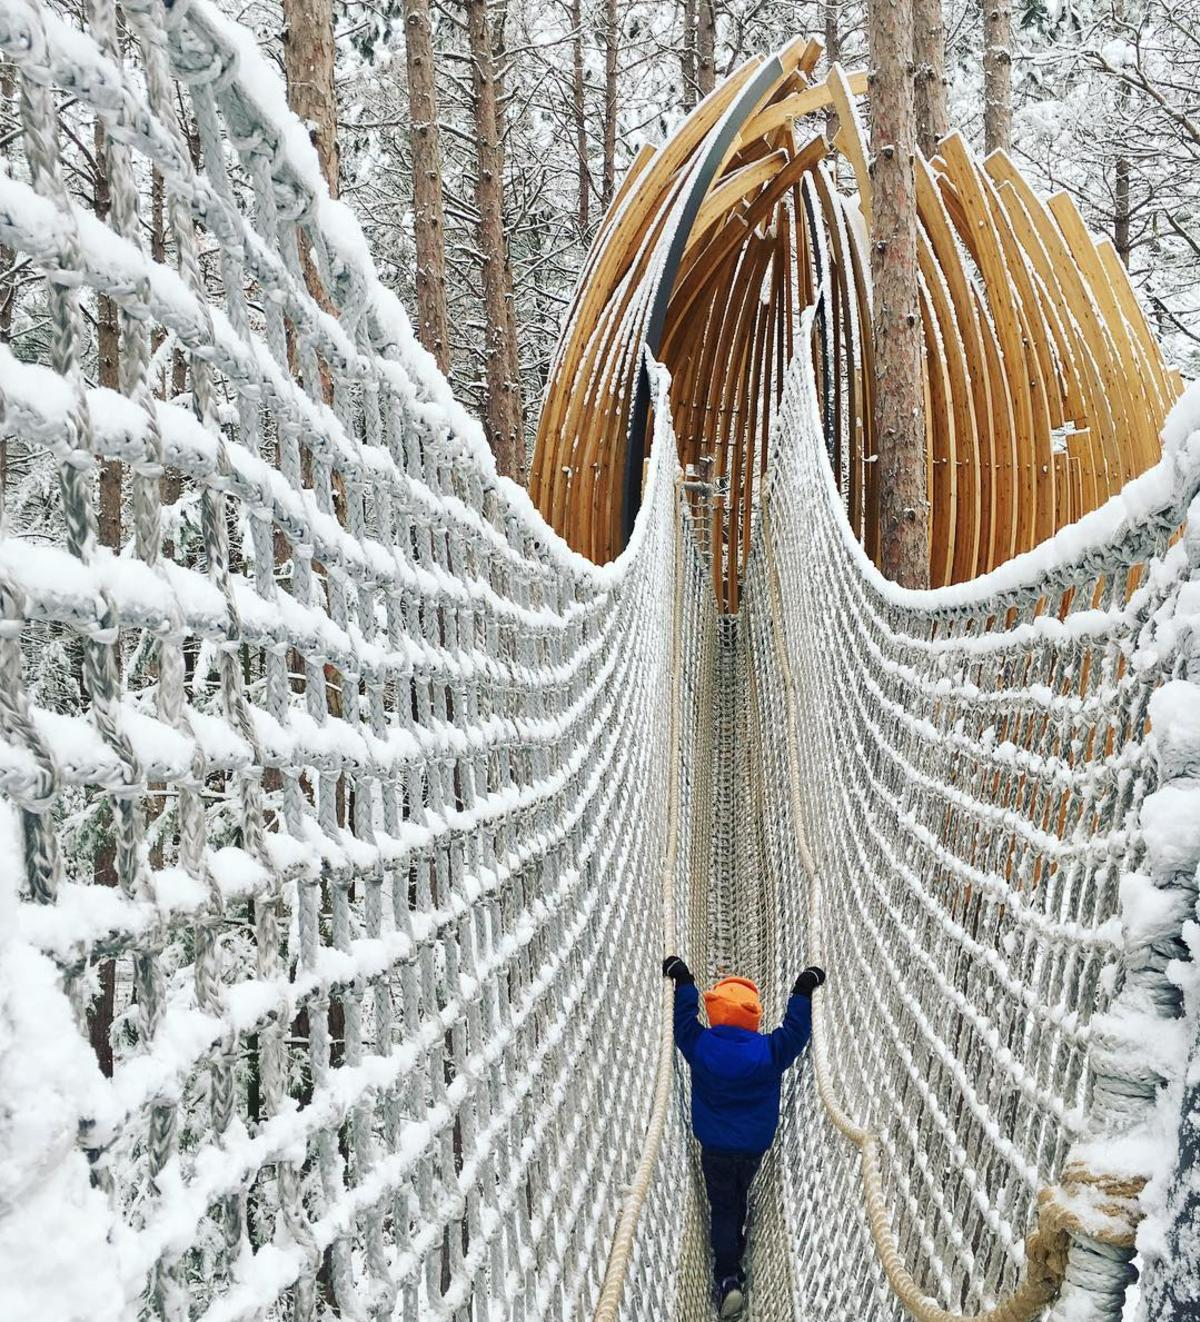 Child crossing a snow-covered cargo net bridge to a giant wooden pod along the Canopy Walk at Whiting Forest of Dow Gardens in Midland